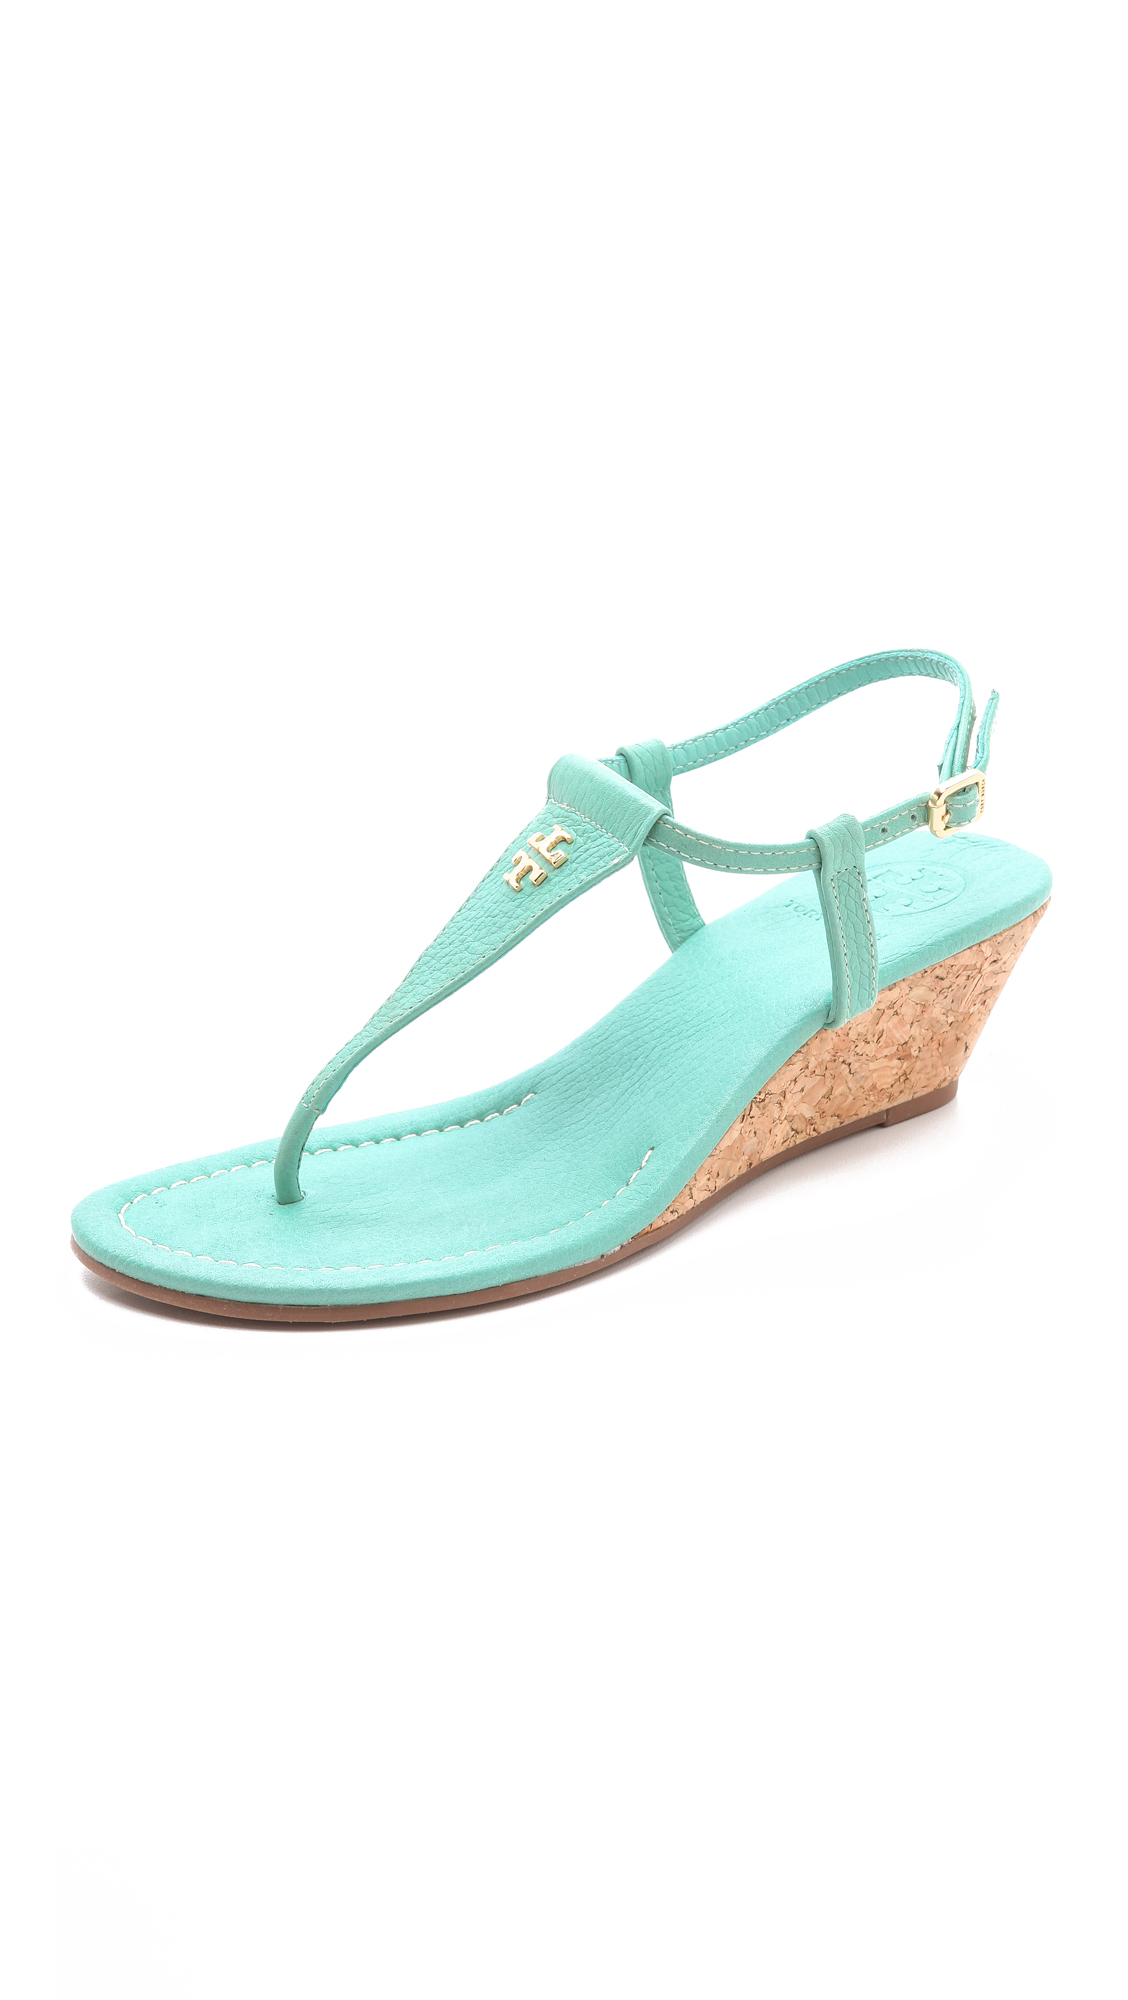 Lyst Tory Burch Britton Wedge Thong Sandals In Green